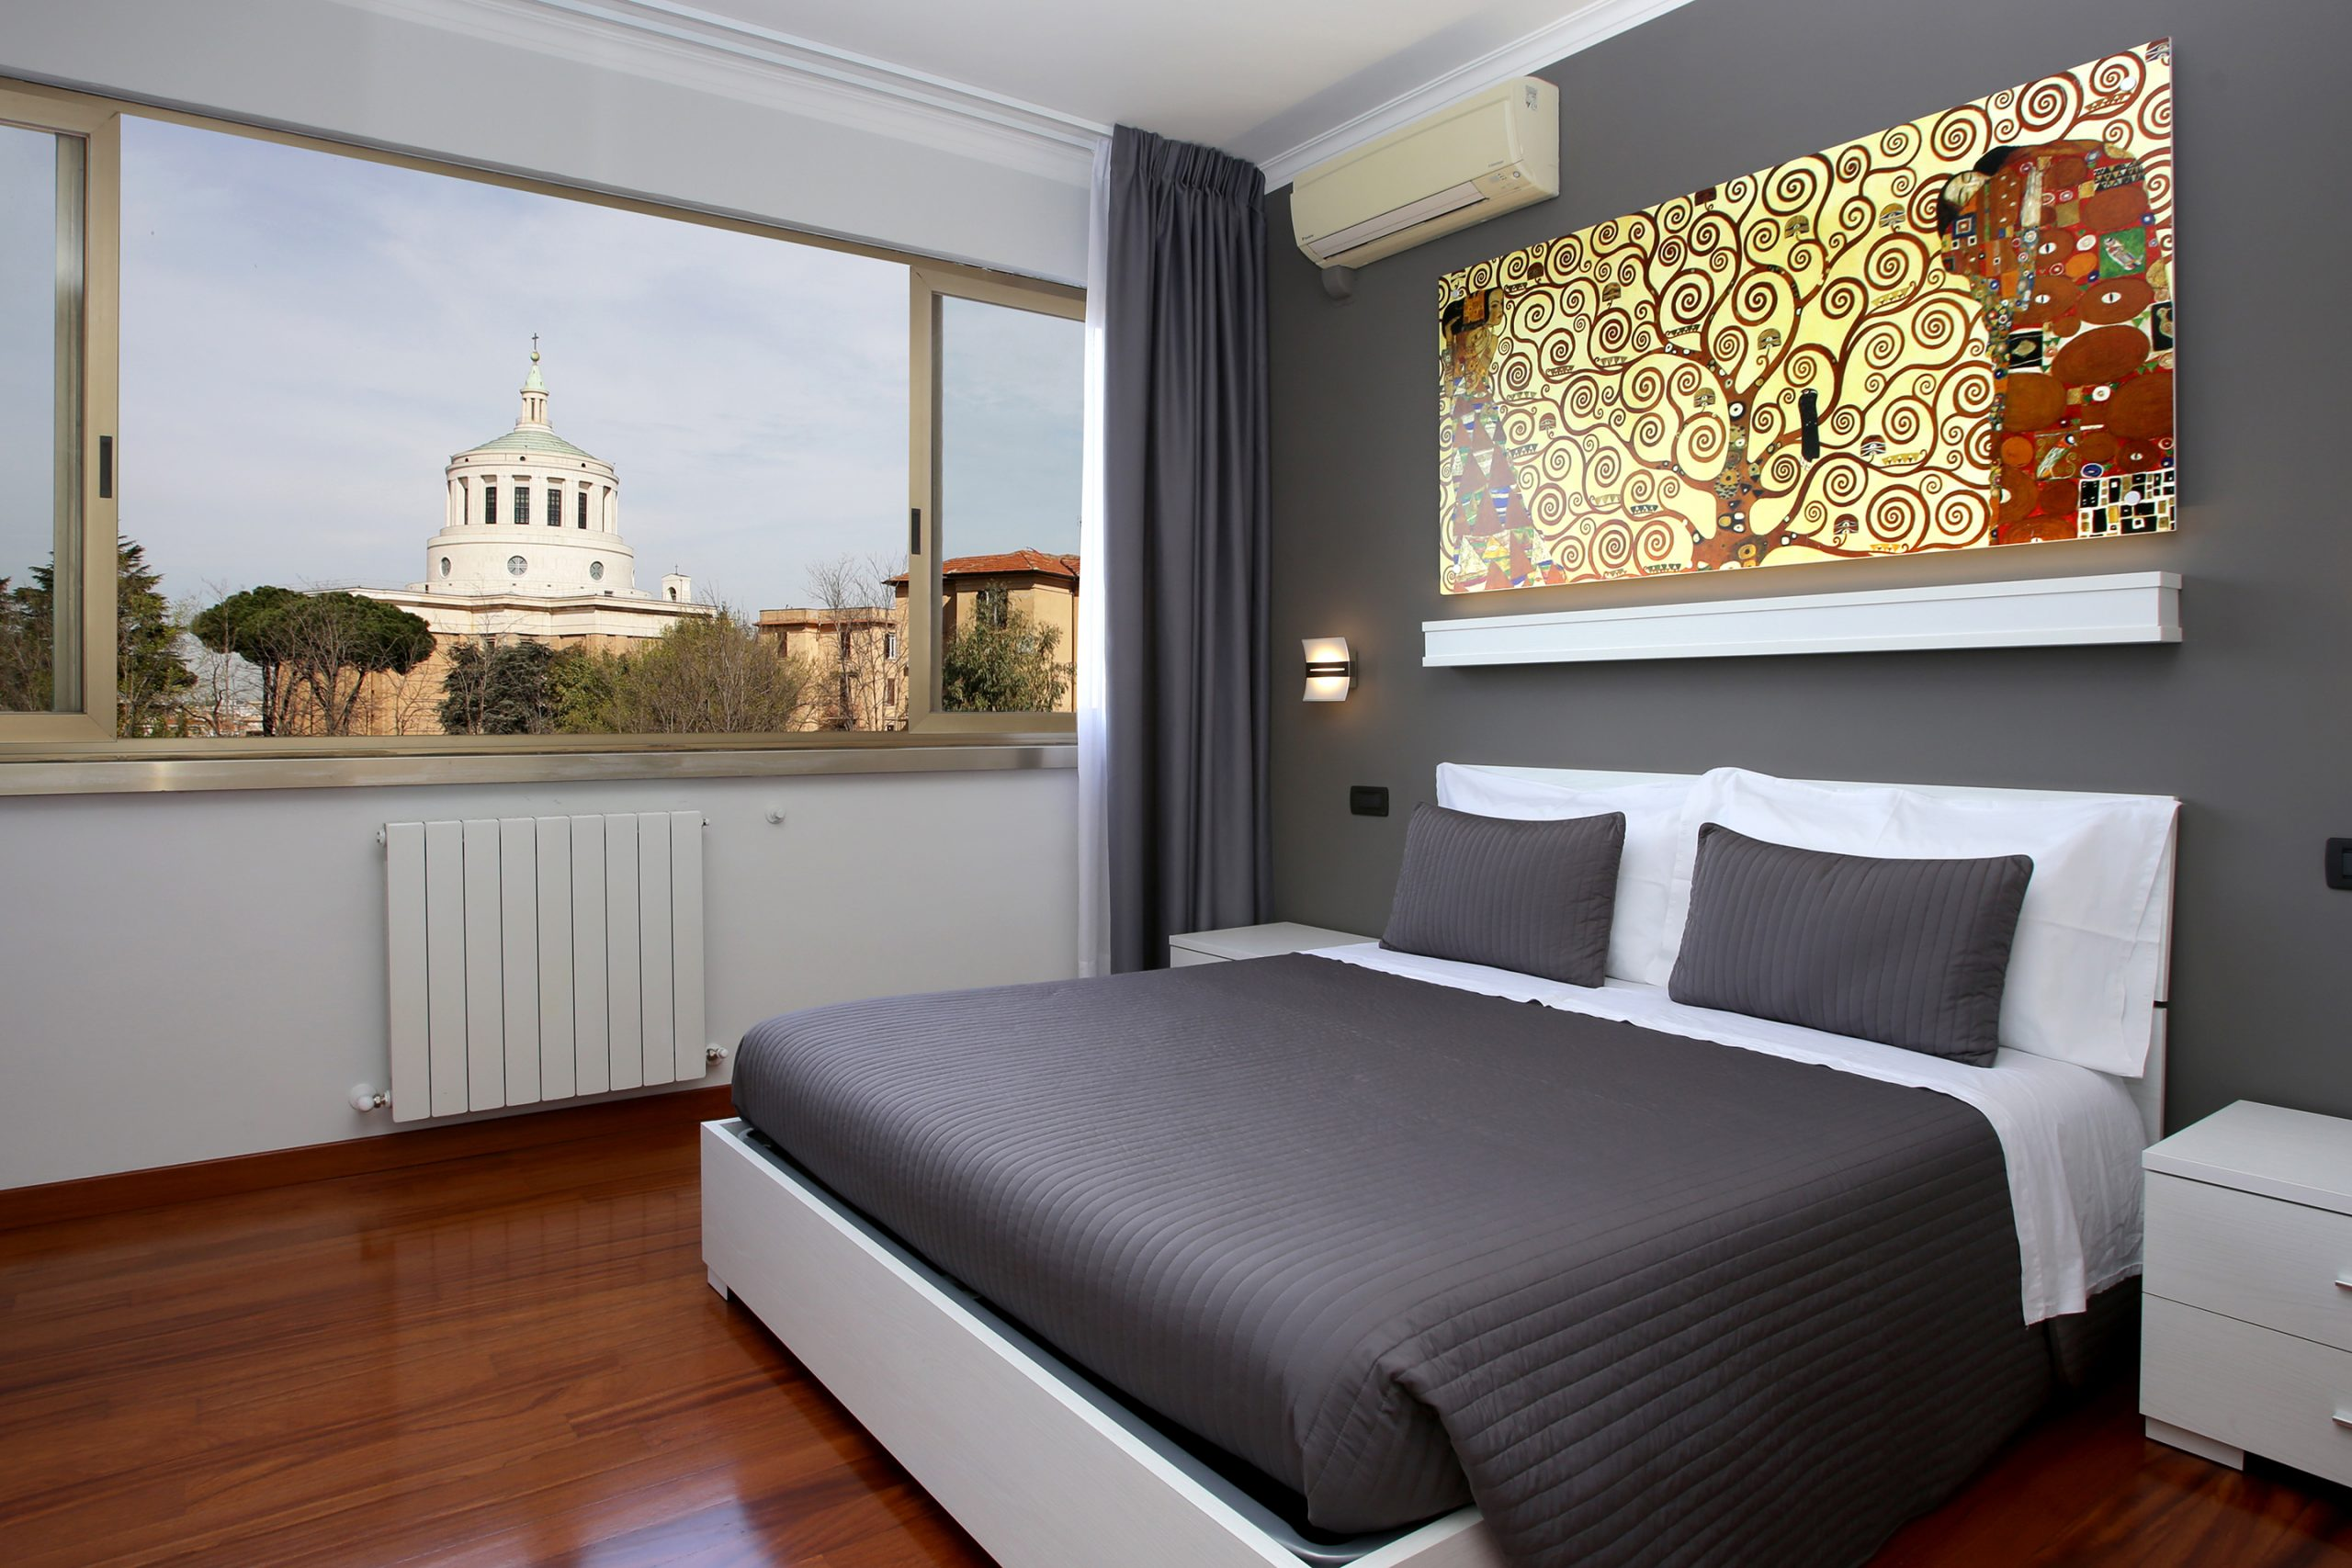 J24 B&B - bed & breakfast roma eur - Klimt - camera matrimoniale con bagno privato